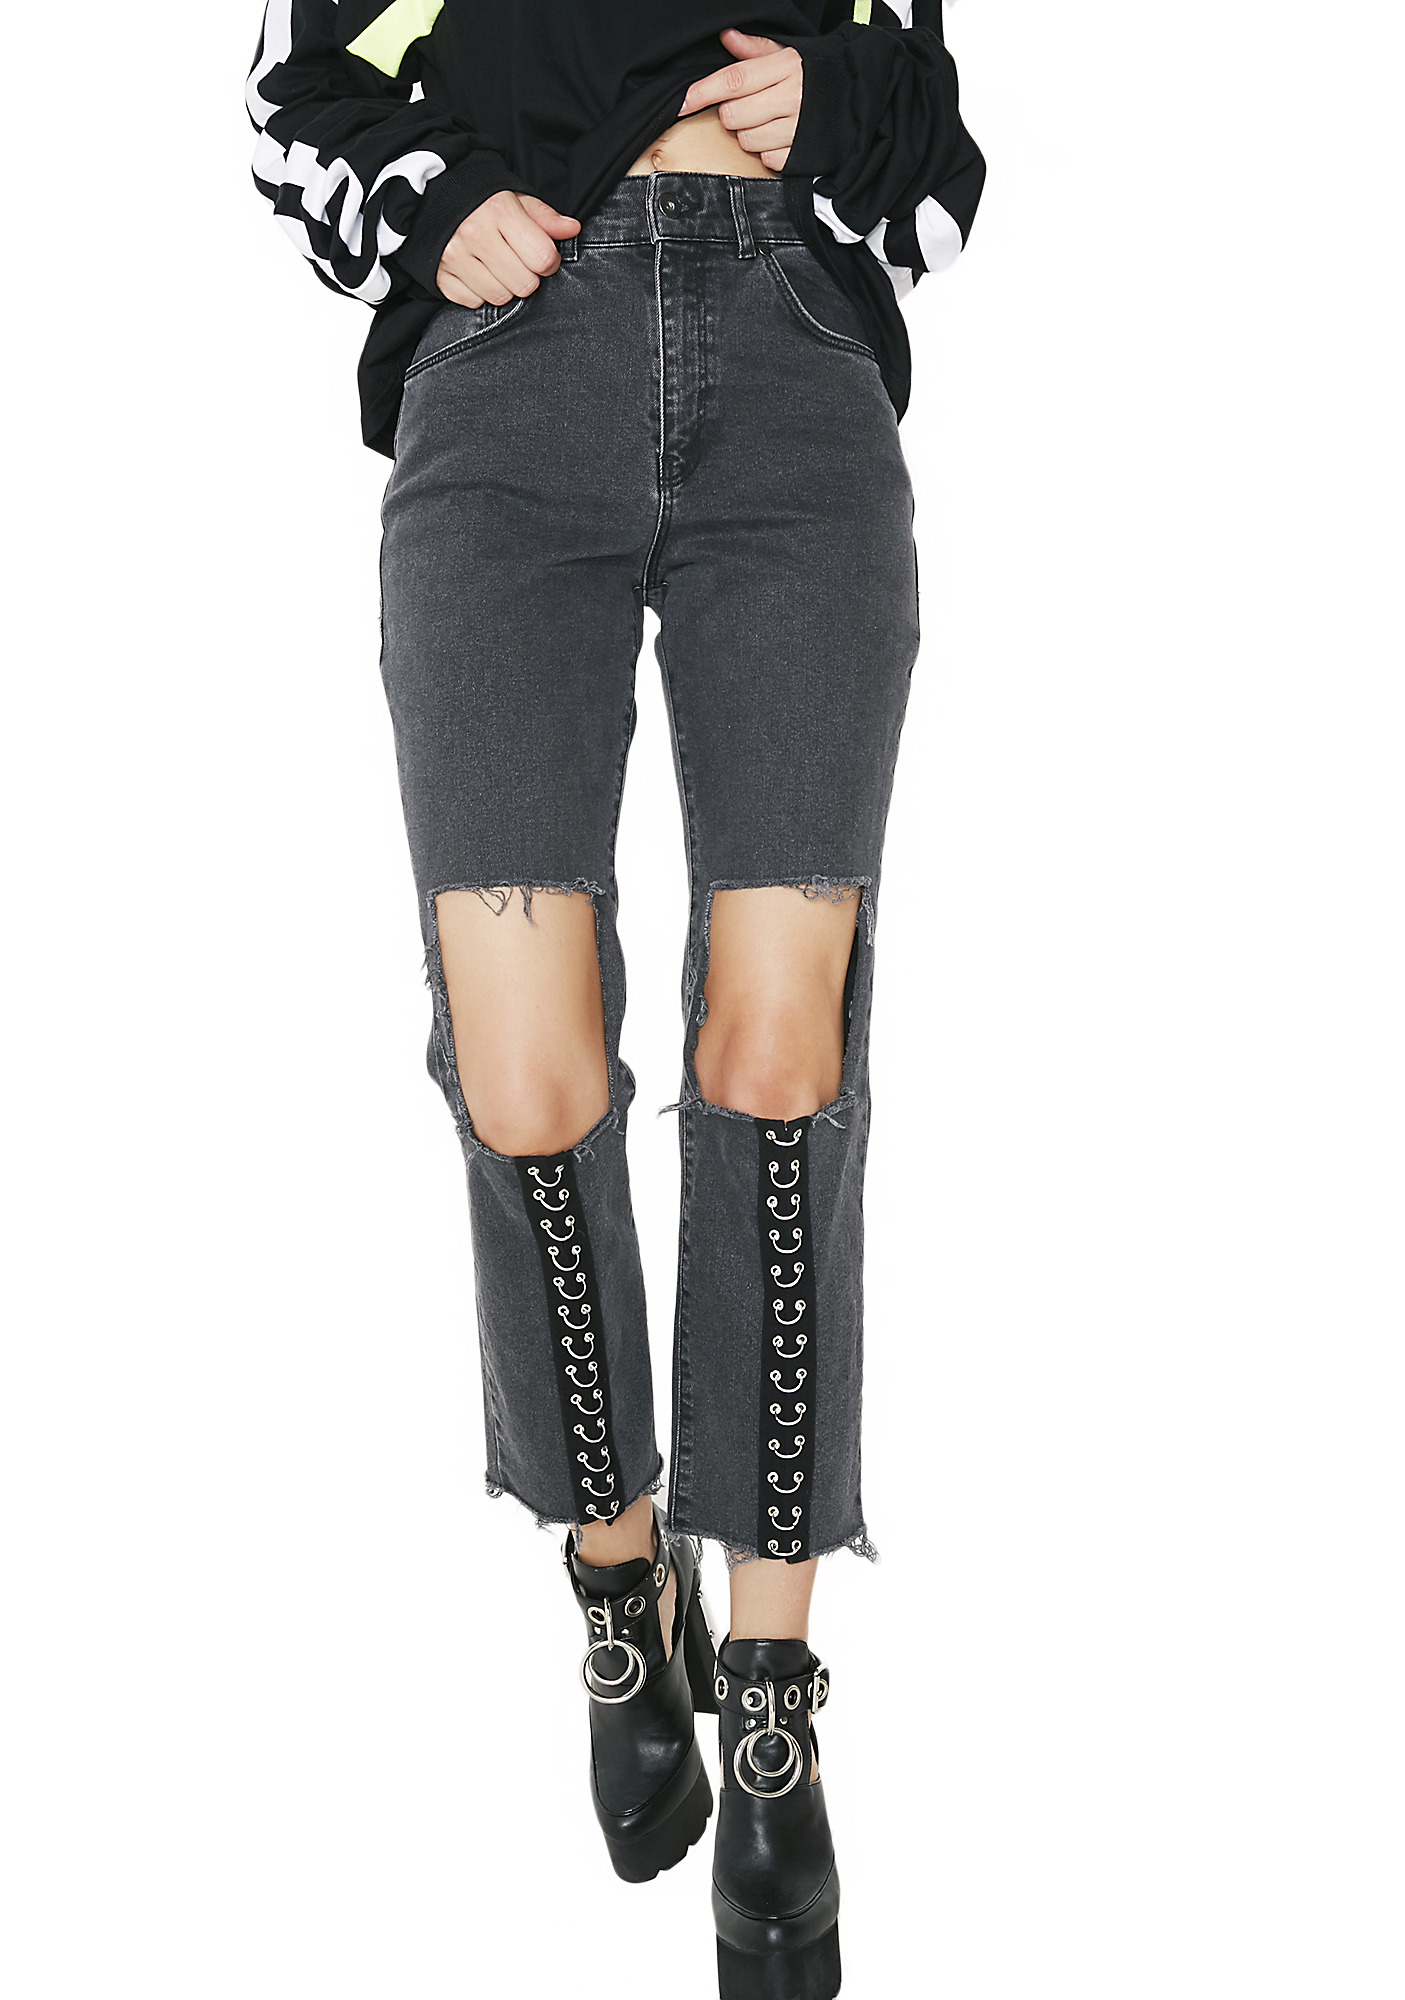 The Ragged Priest Charcoal Brace Jeans